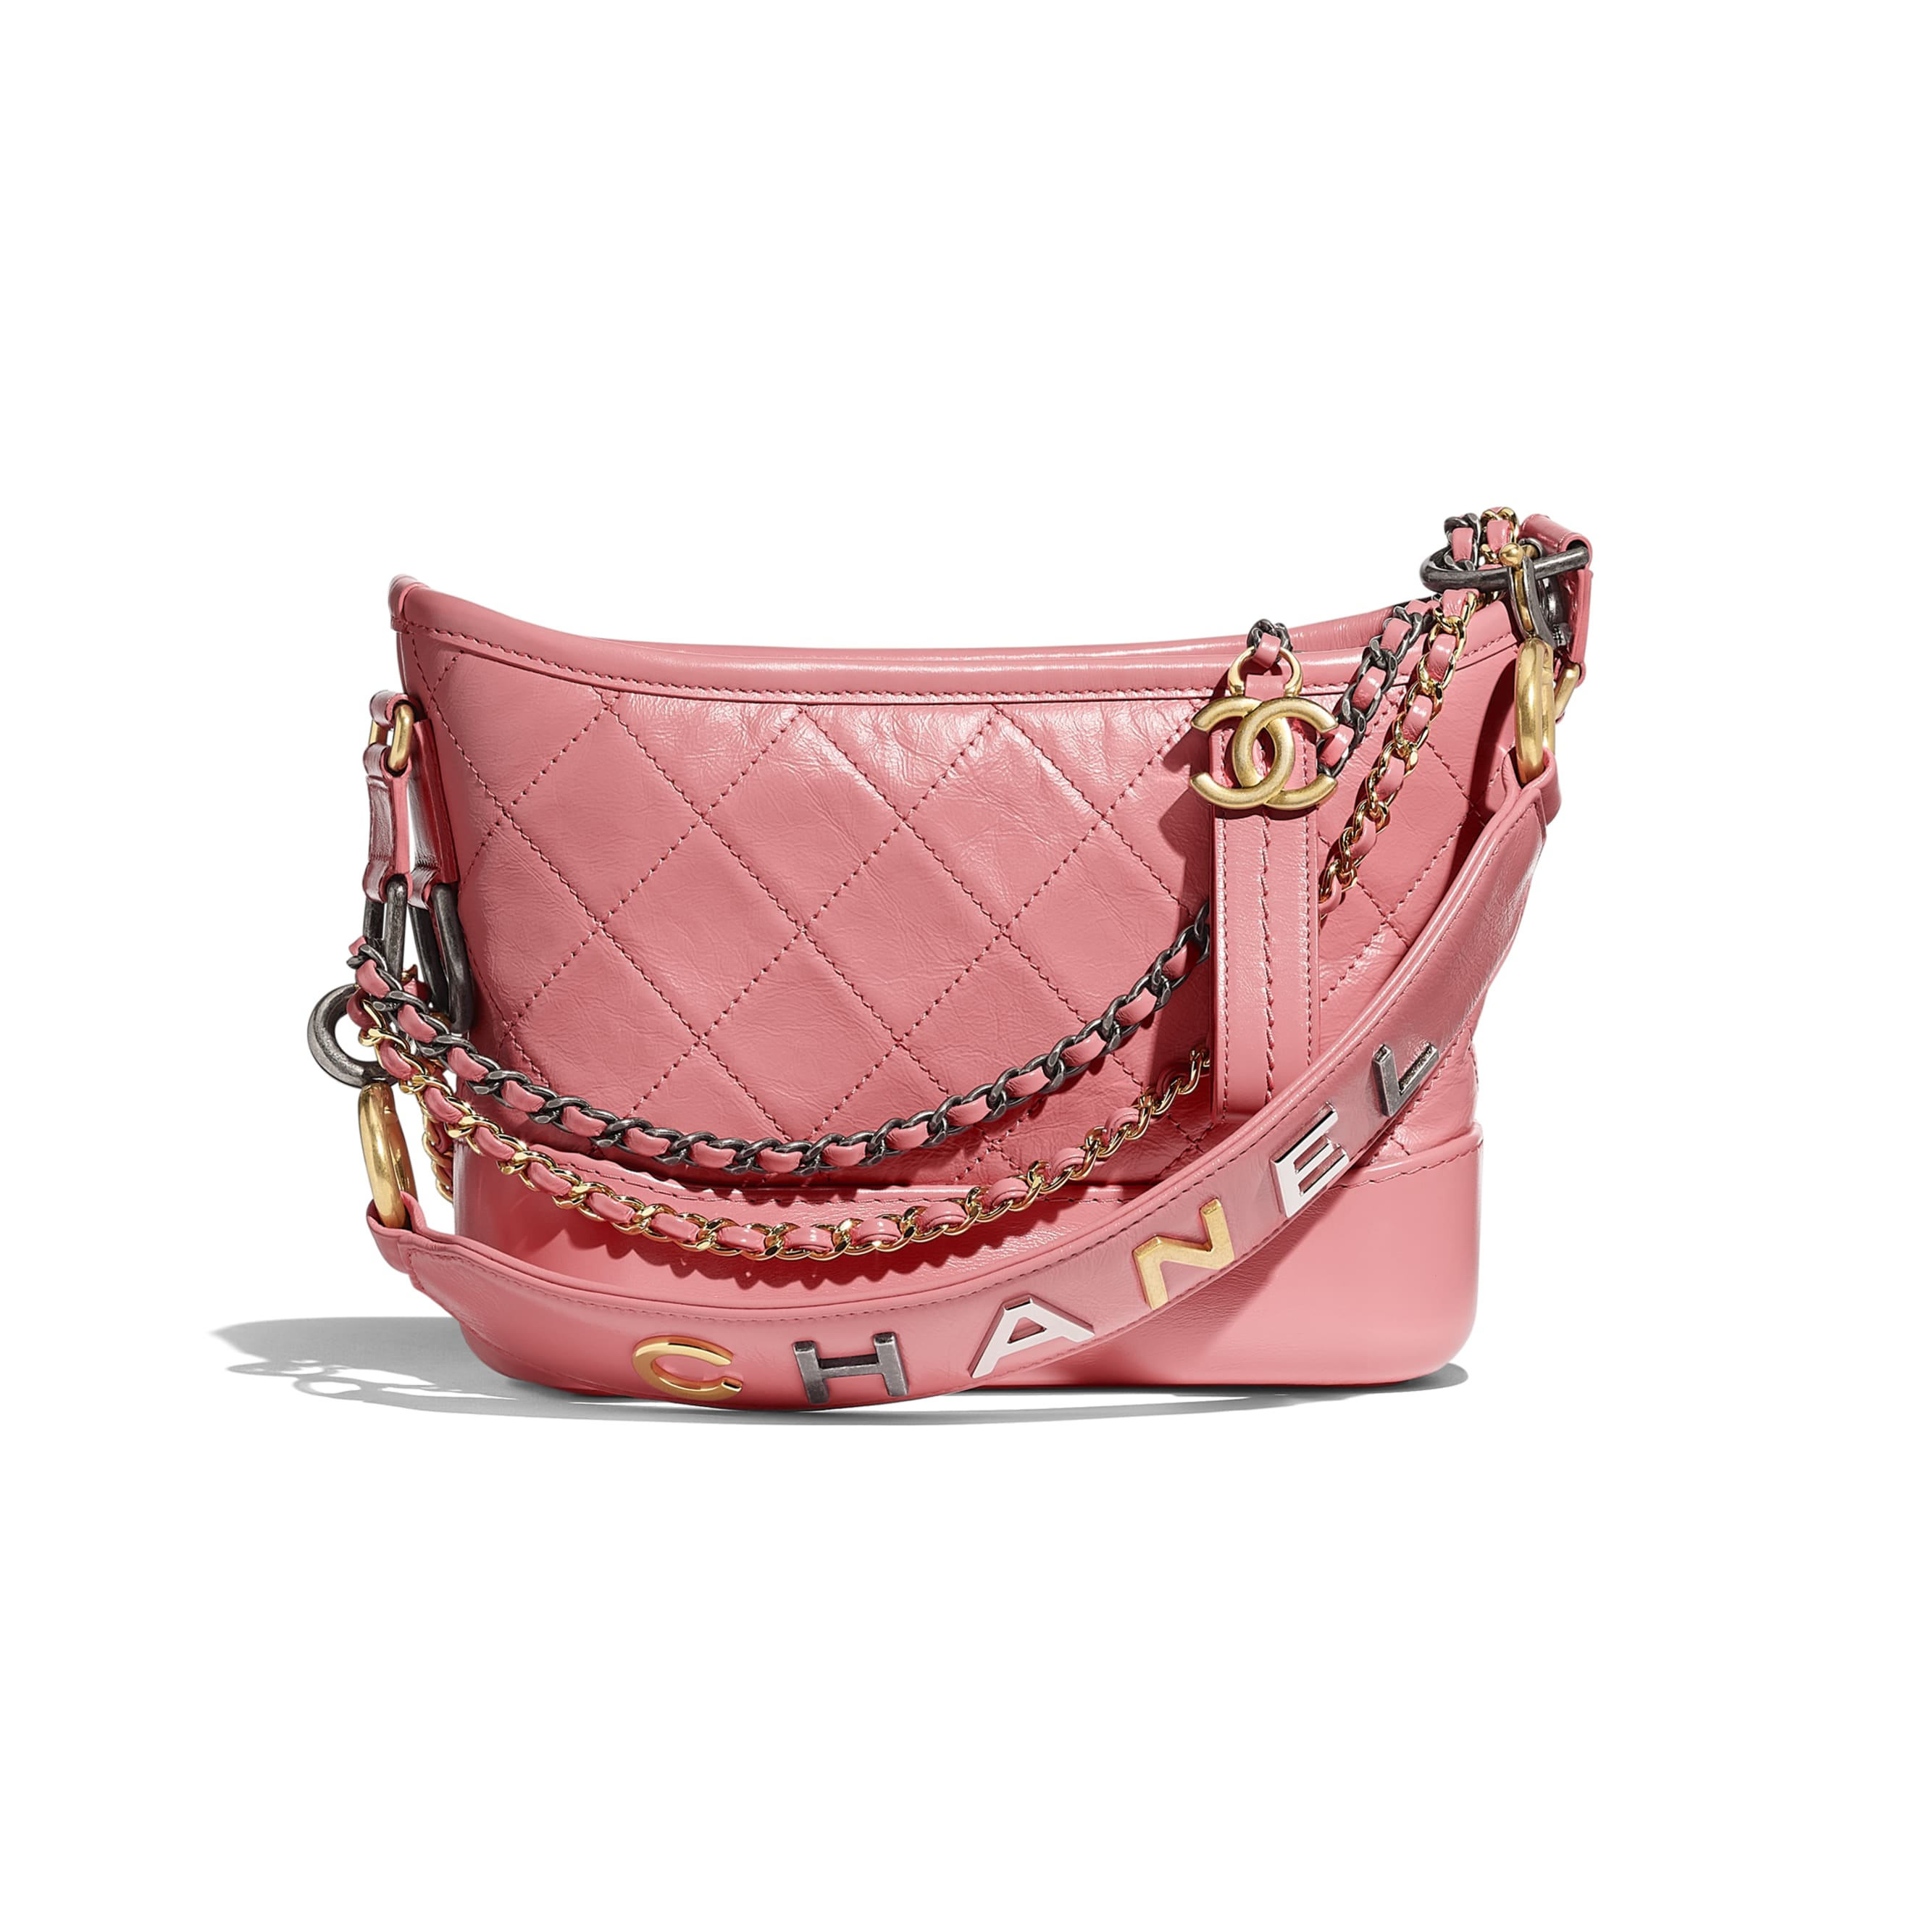 CHANEL'S GABRIELLE Small Hobo Bag - Pink - Aged Calfskin, Smooth Calfskin, Gold-Tone & Silver-Tone Metal - Default view - see standard sized version